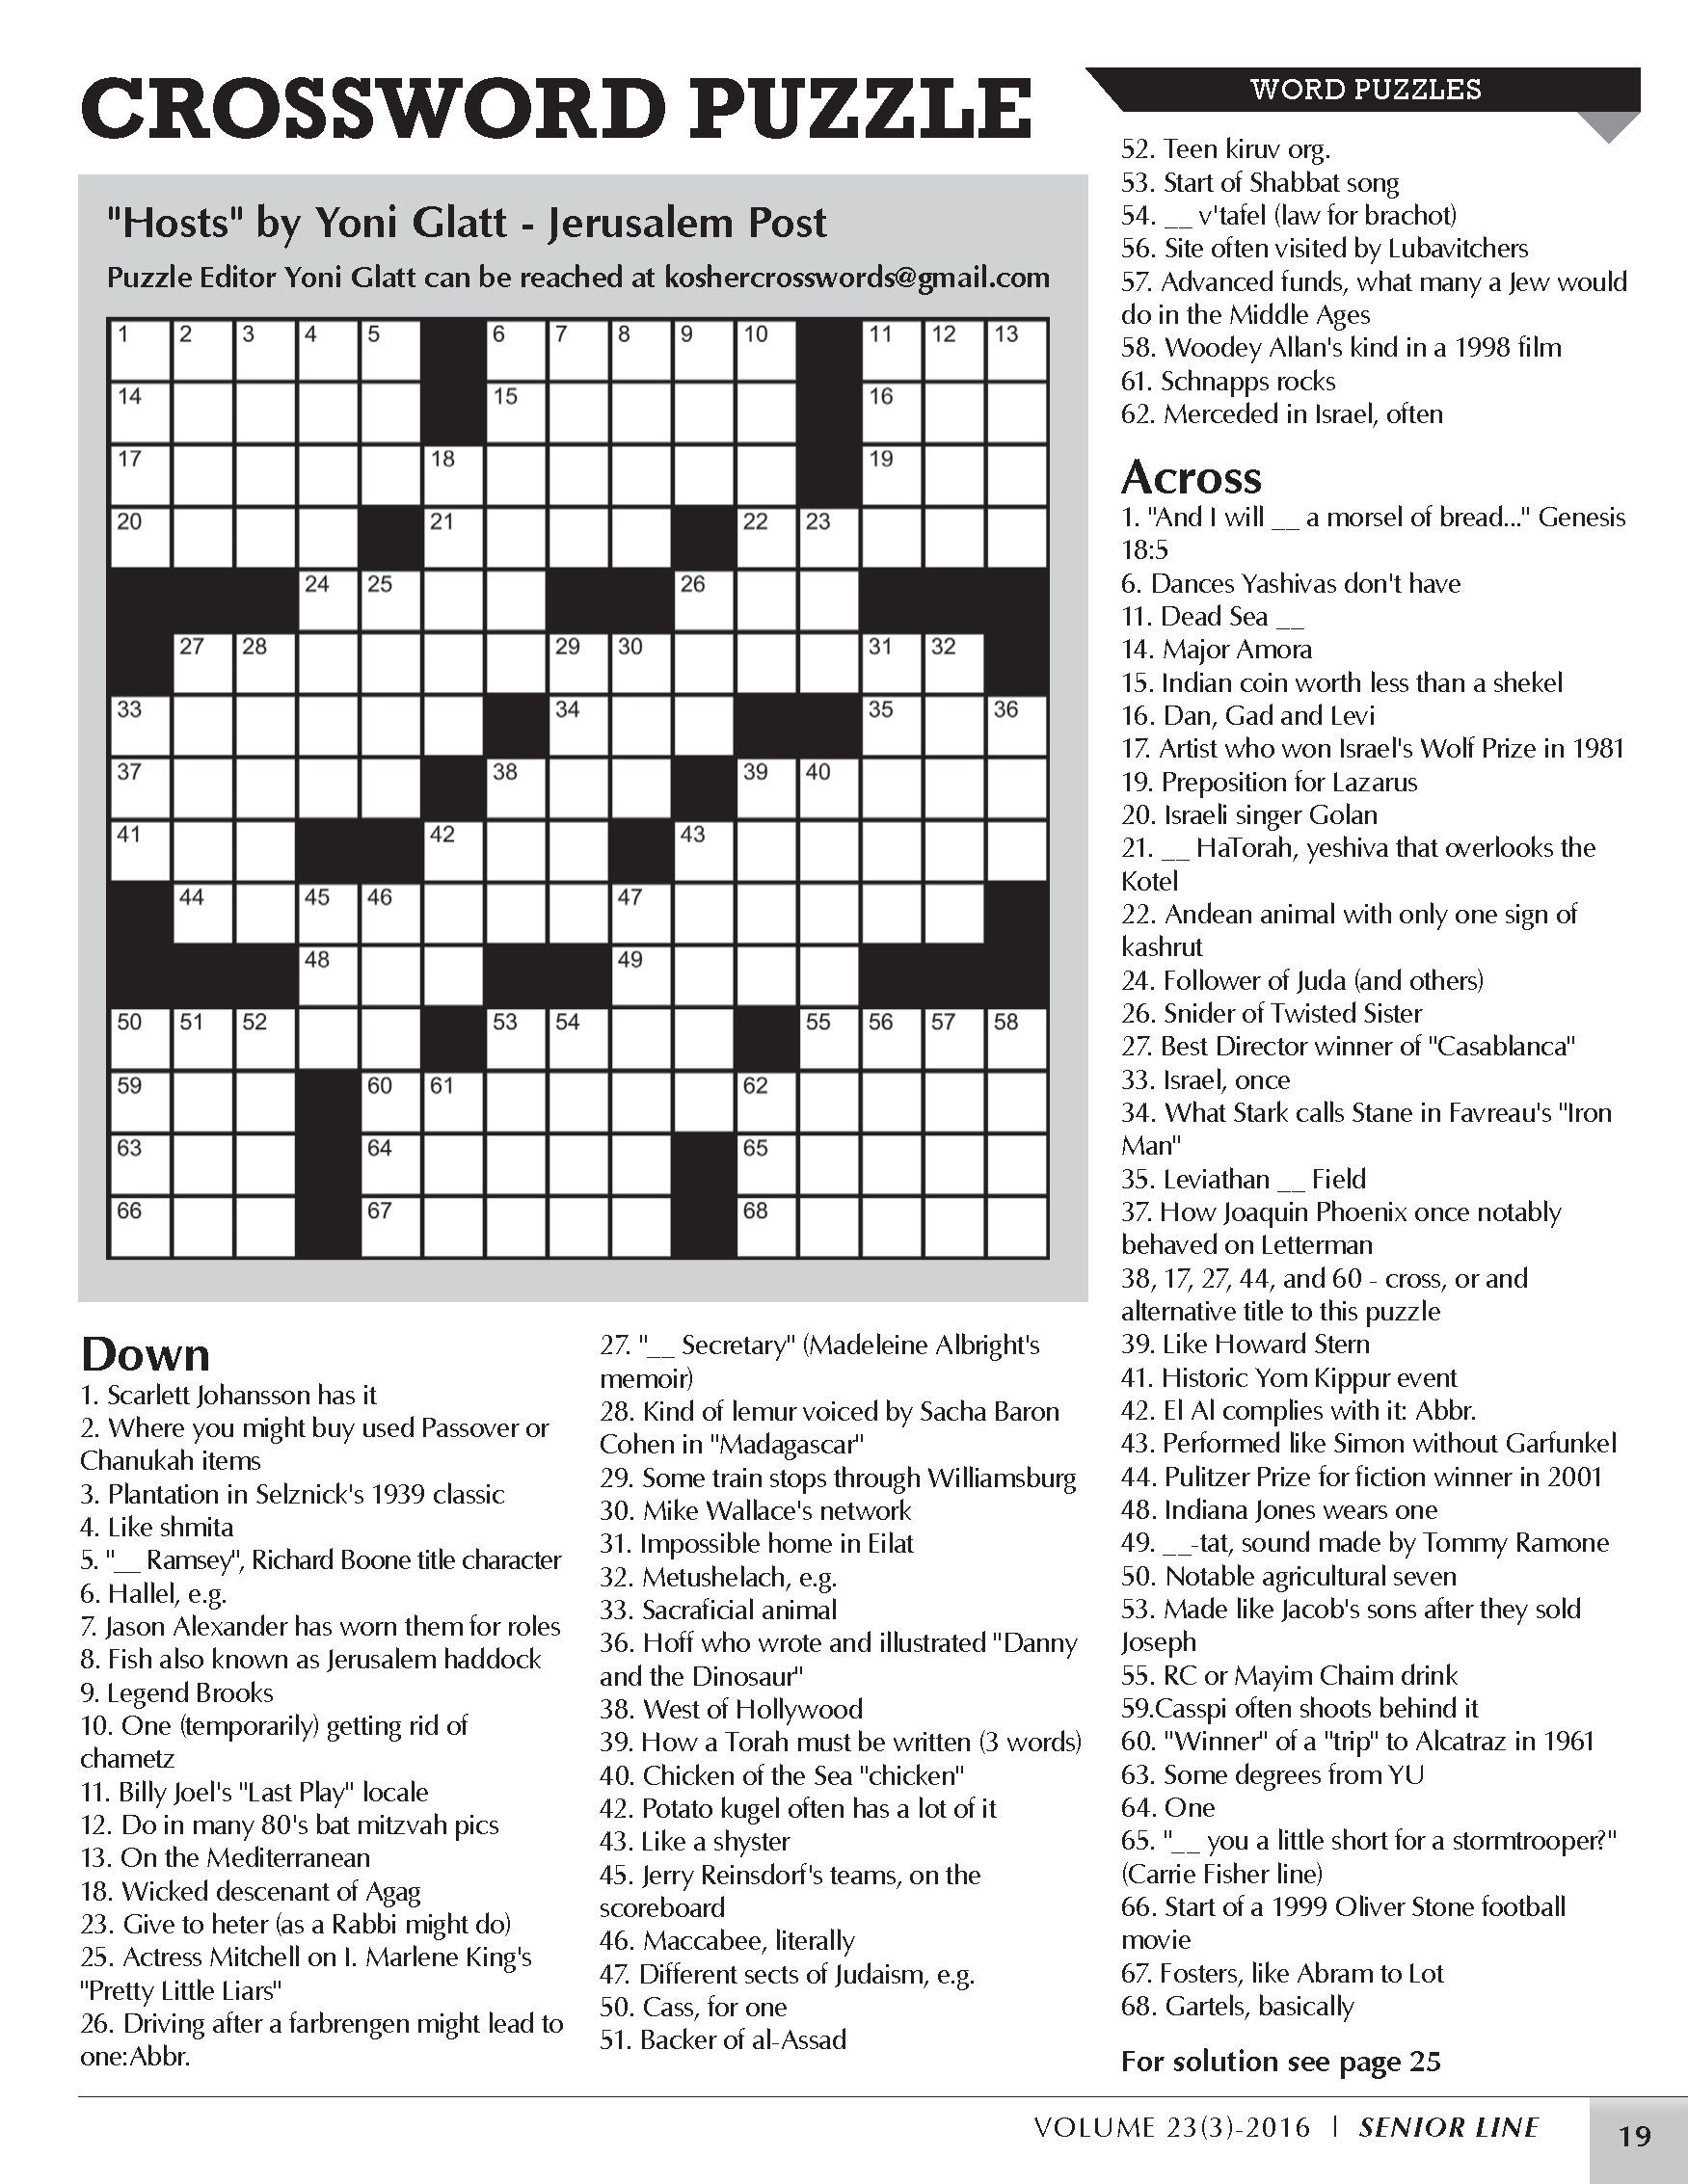 effectiveness of crossword puzzle in learning vocabulary Employs crossword puzzles in the teaching and acquisition of vocabulary this research will, therefore, add to the existing scholarship on vocabulary learning and acquisition as it uniquely looks at the role of crossword puzzles in.